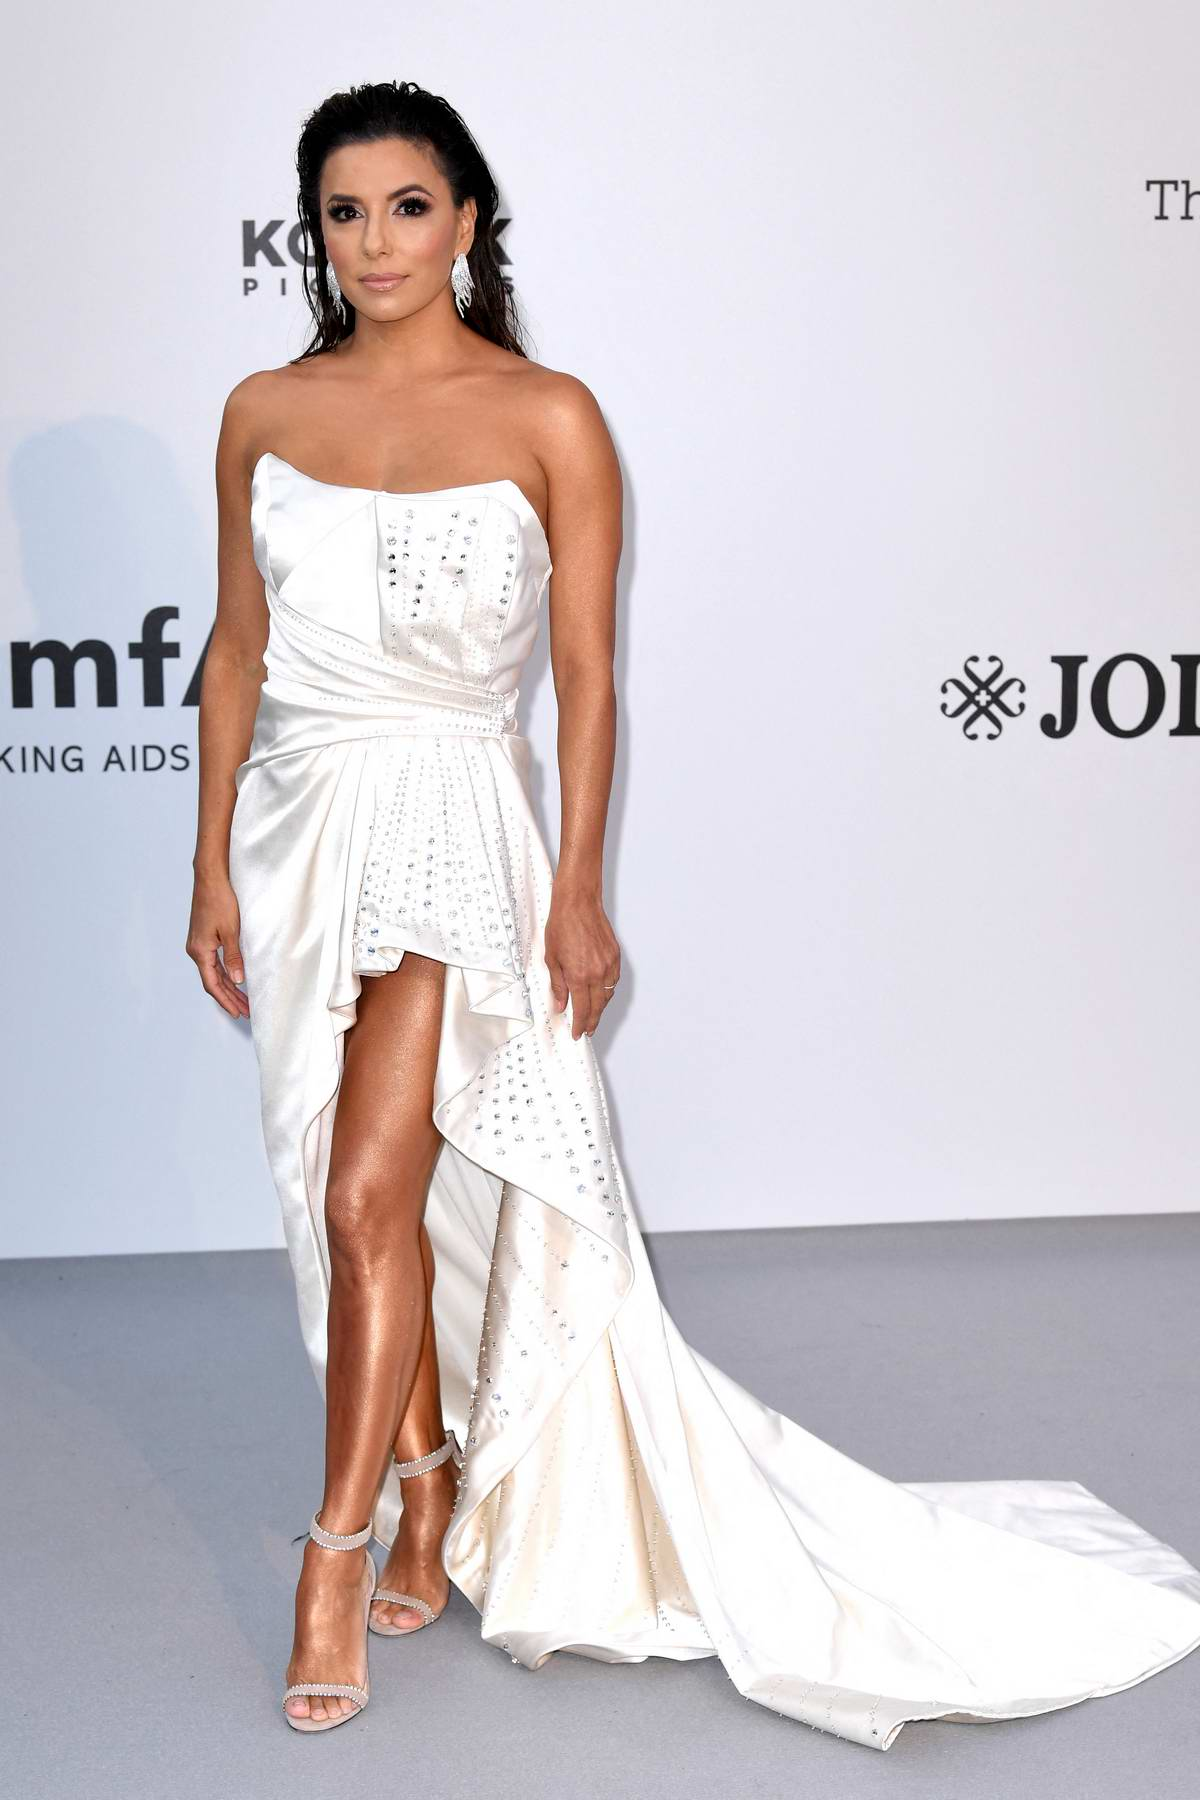 Eva Longoria attends the 26th amfAR Gala held at Hotel du Cap-Eden-Roc during the 72nd annual Cannes Film Festival in Cannes, France